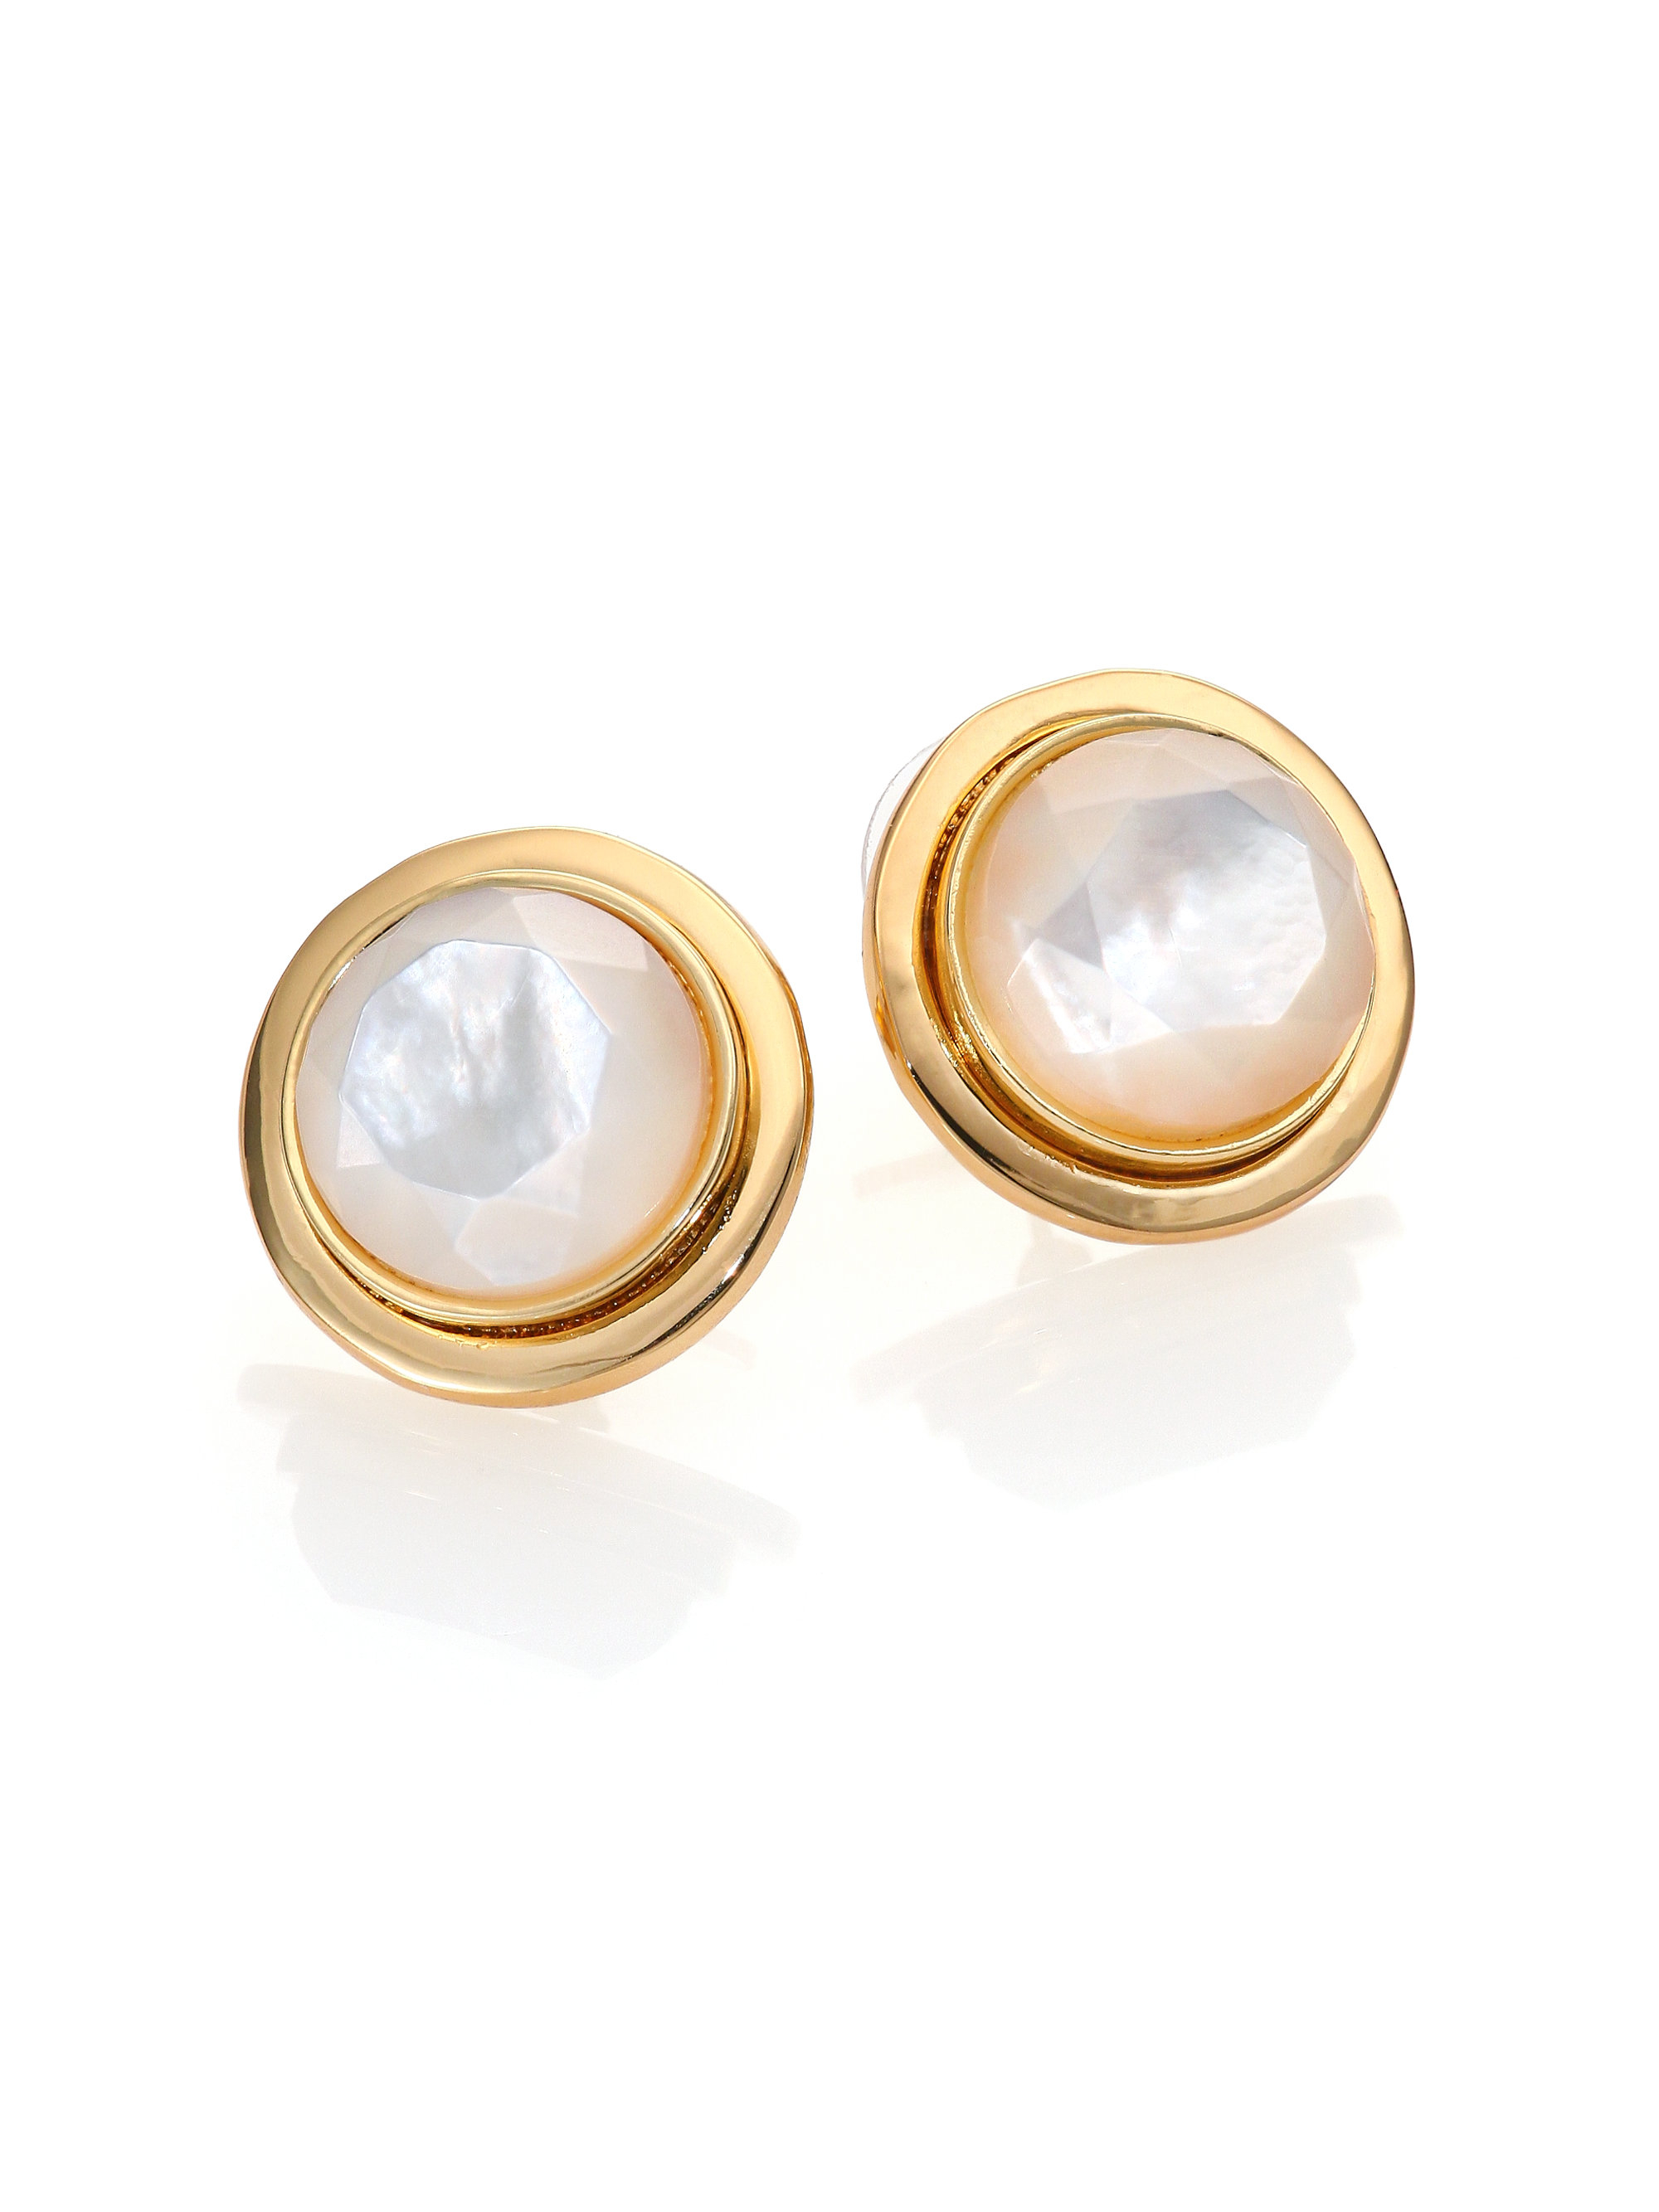 faux en earrings pearl mise enlarged jewelry dior products christian stud